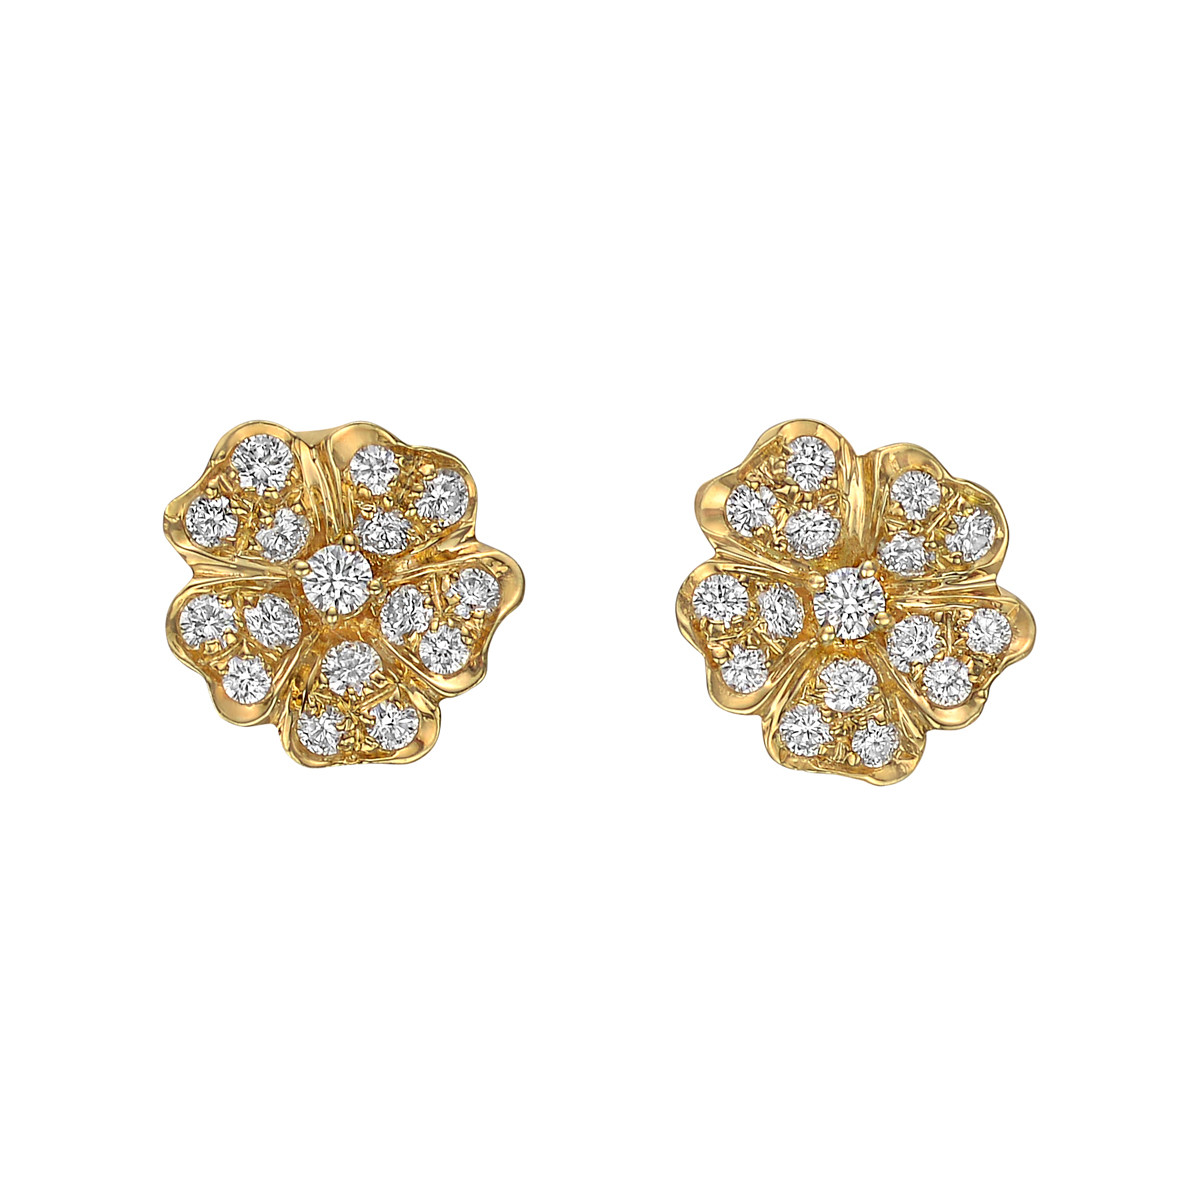 18k Yellow Gold & Diamond Flower Stud Earrings